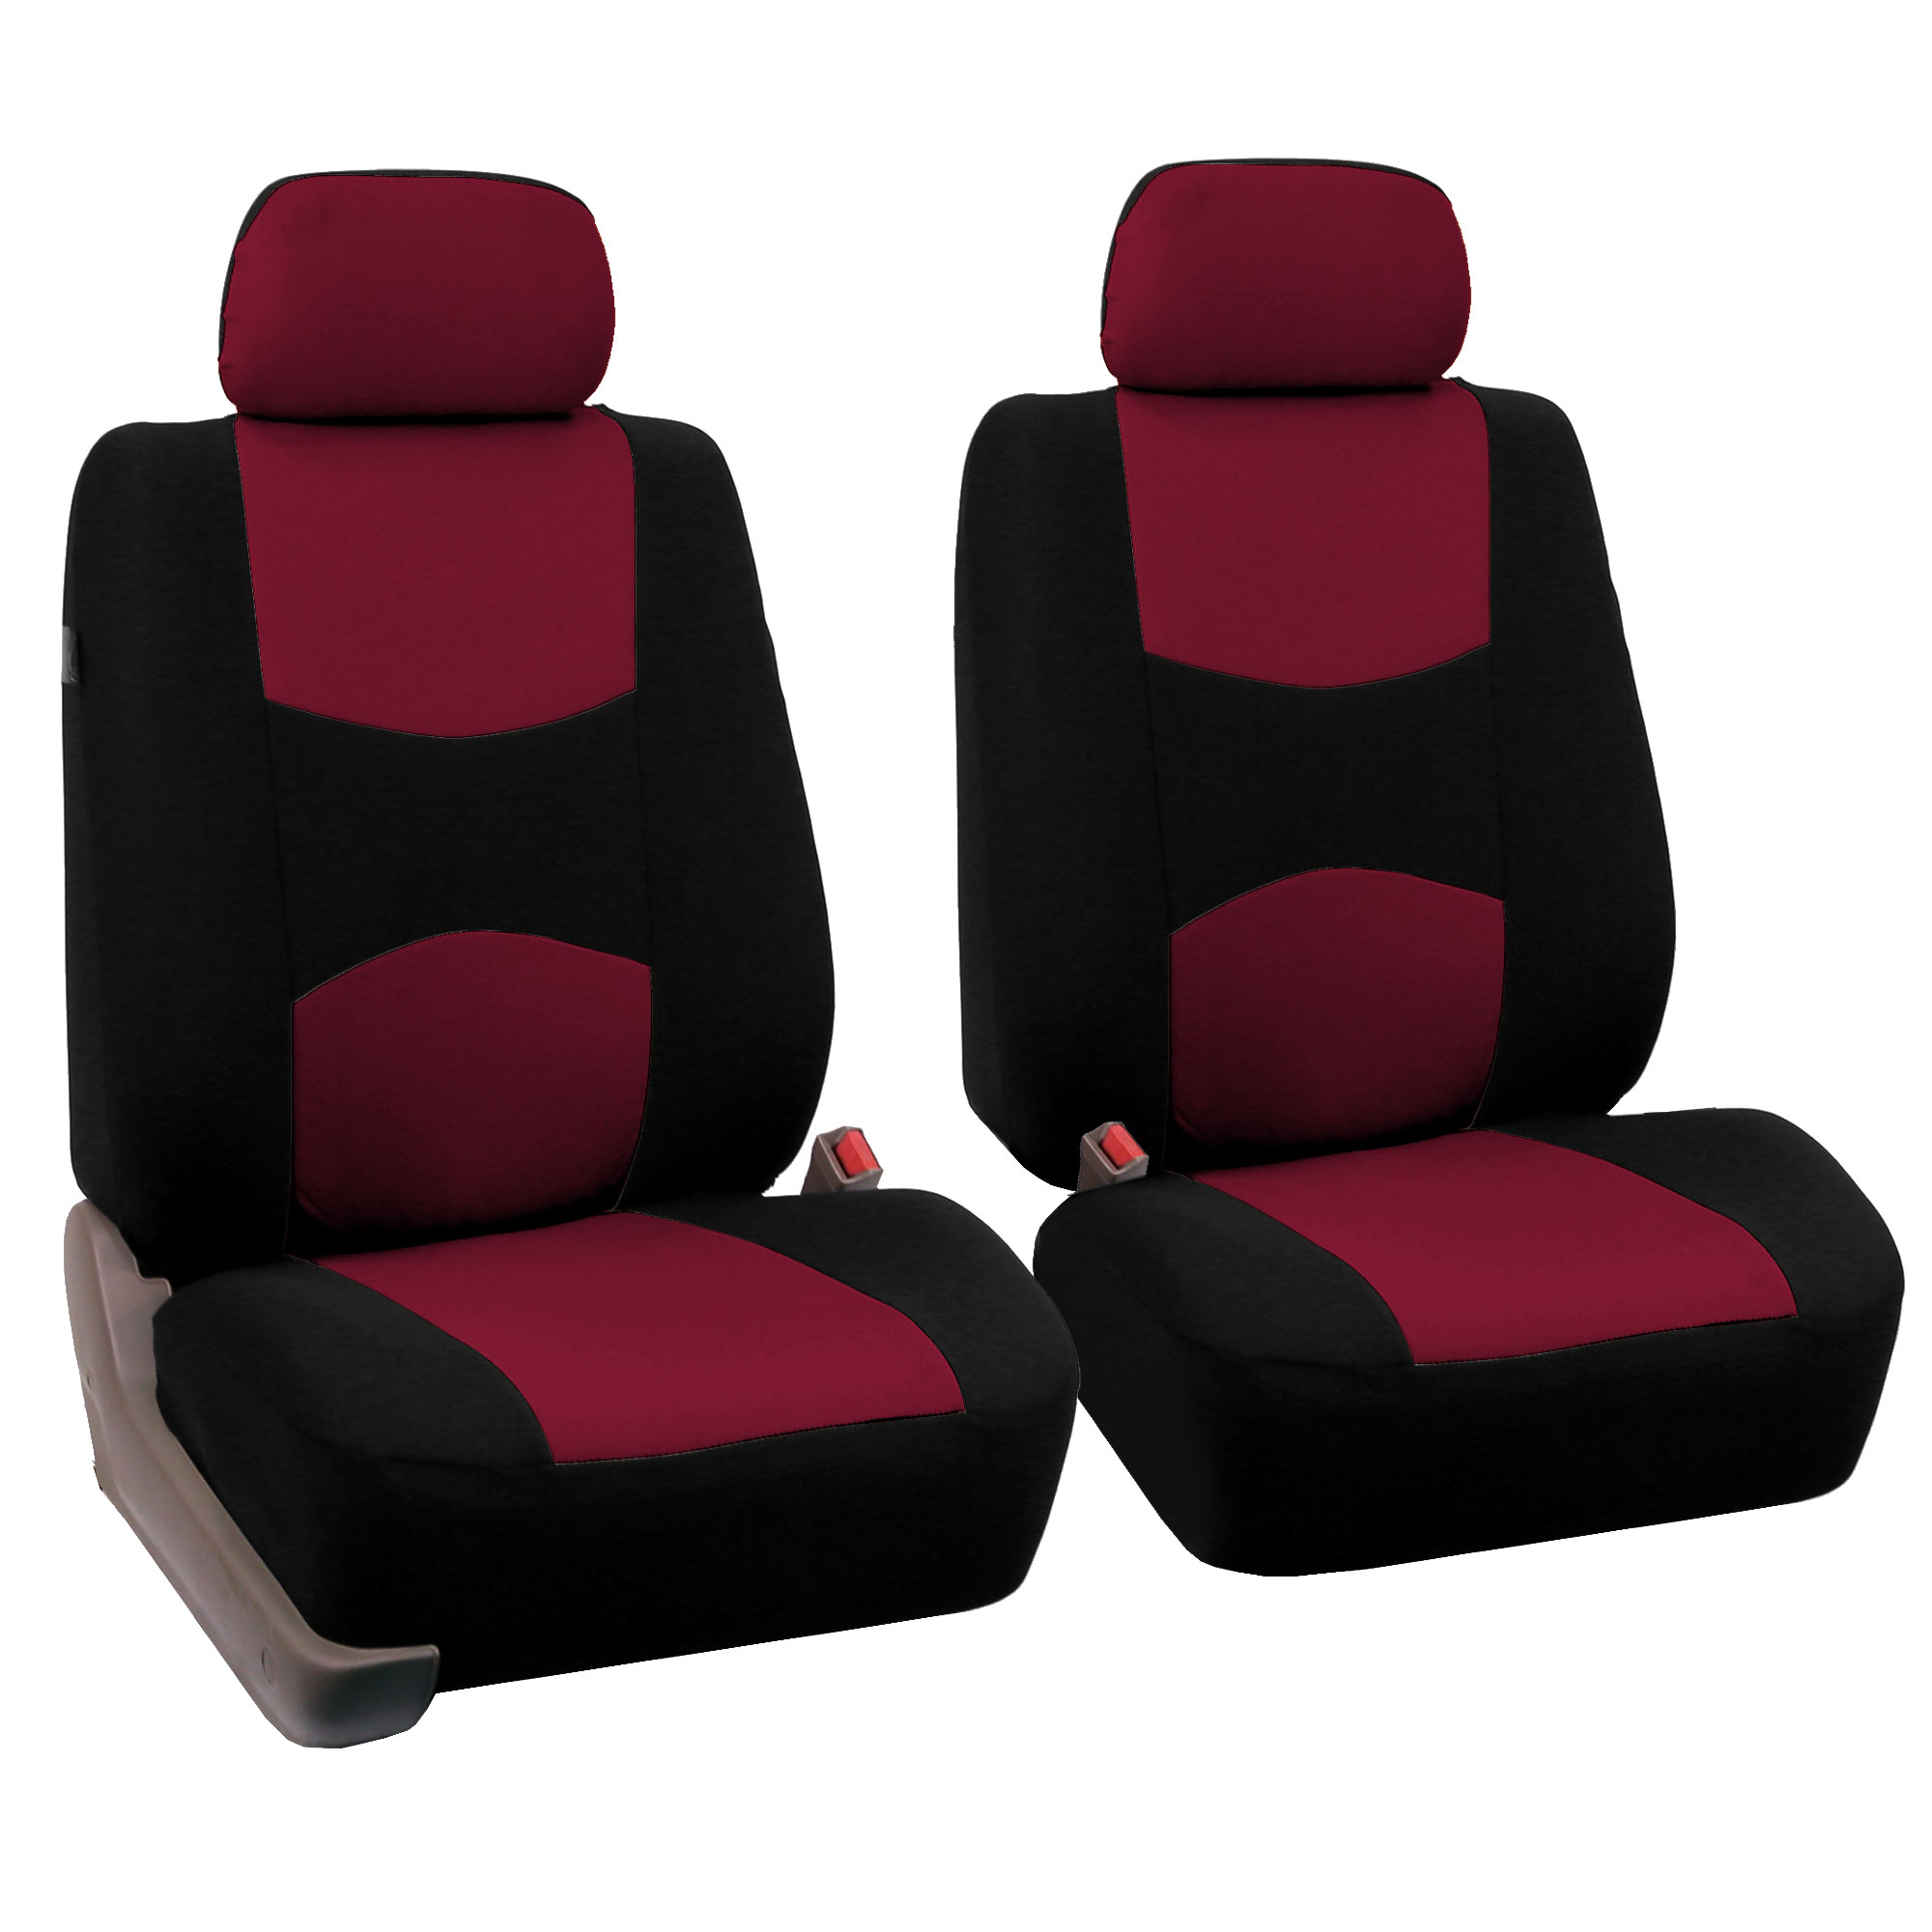 Pair Bucket Fabric Seat Covers For Detachable Headrest Seats EBay - Burgundy toilet seat cover